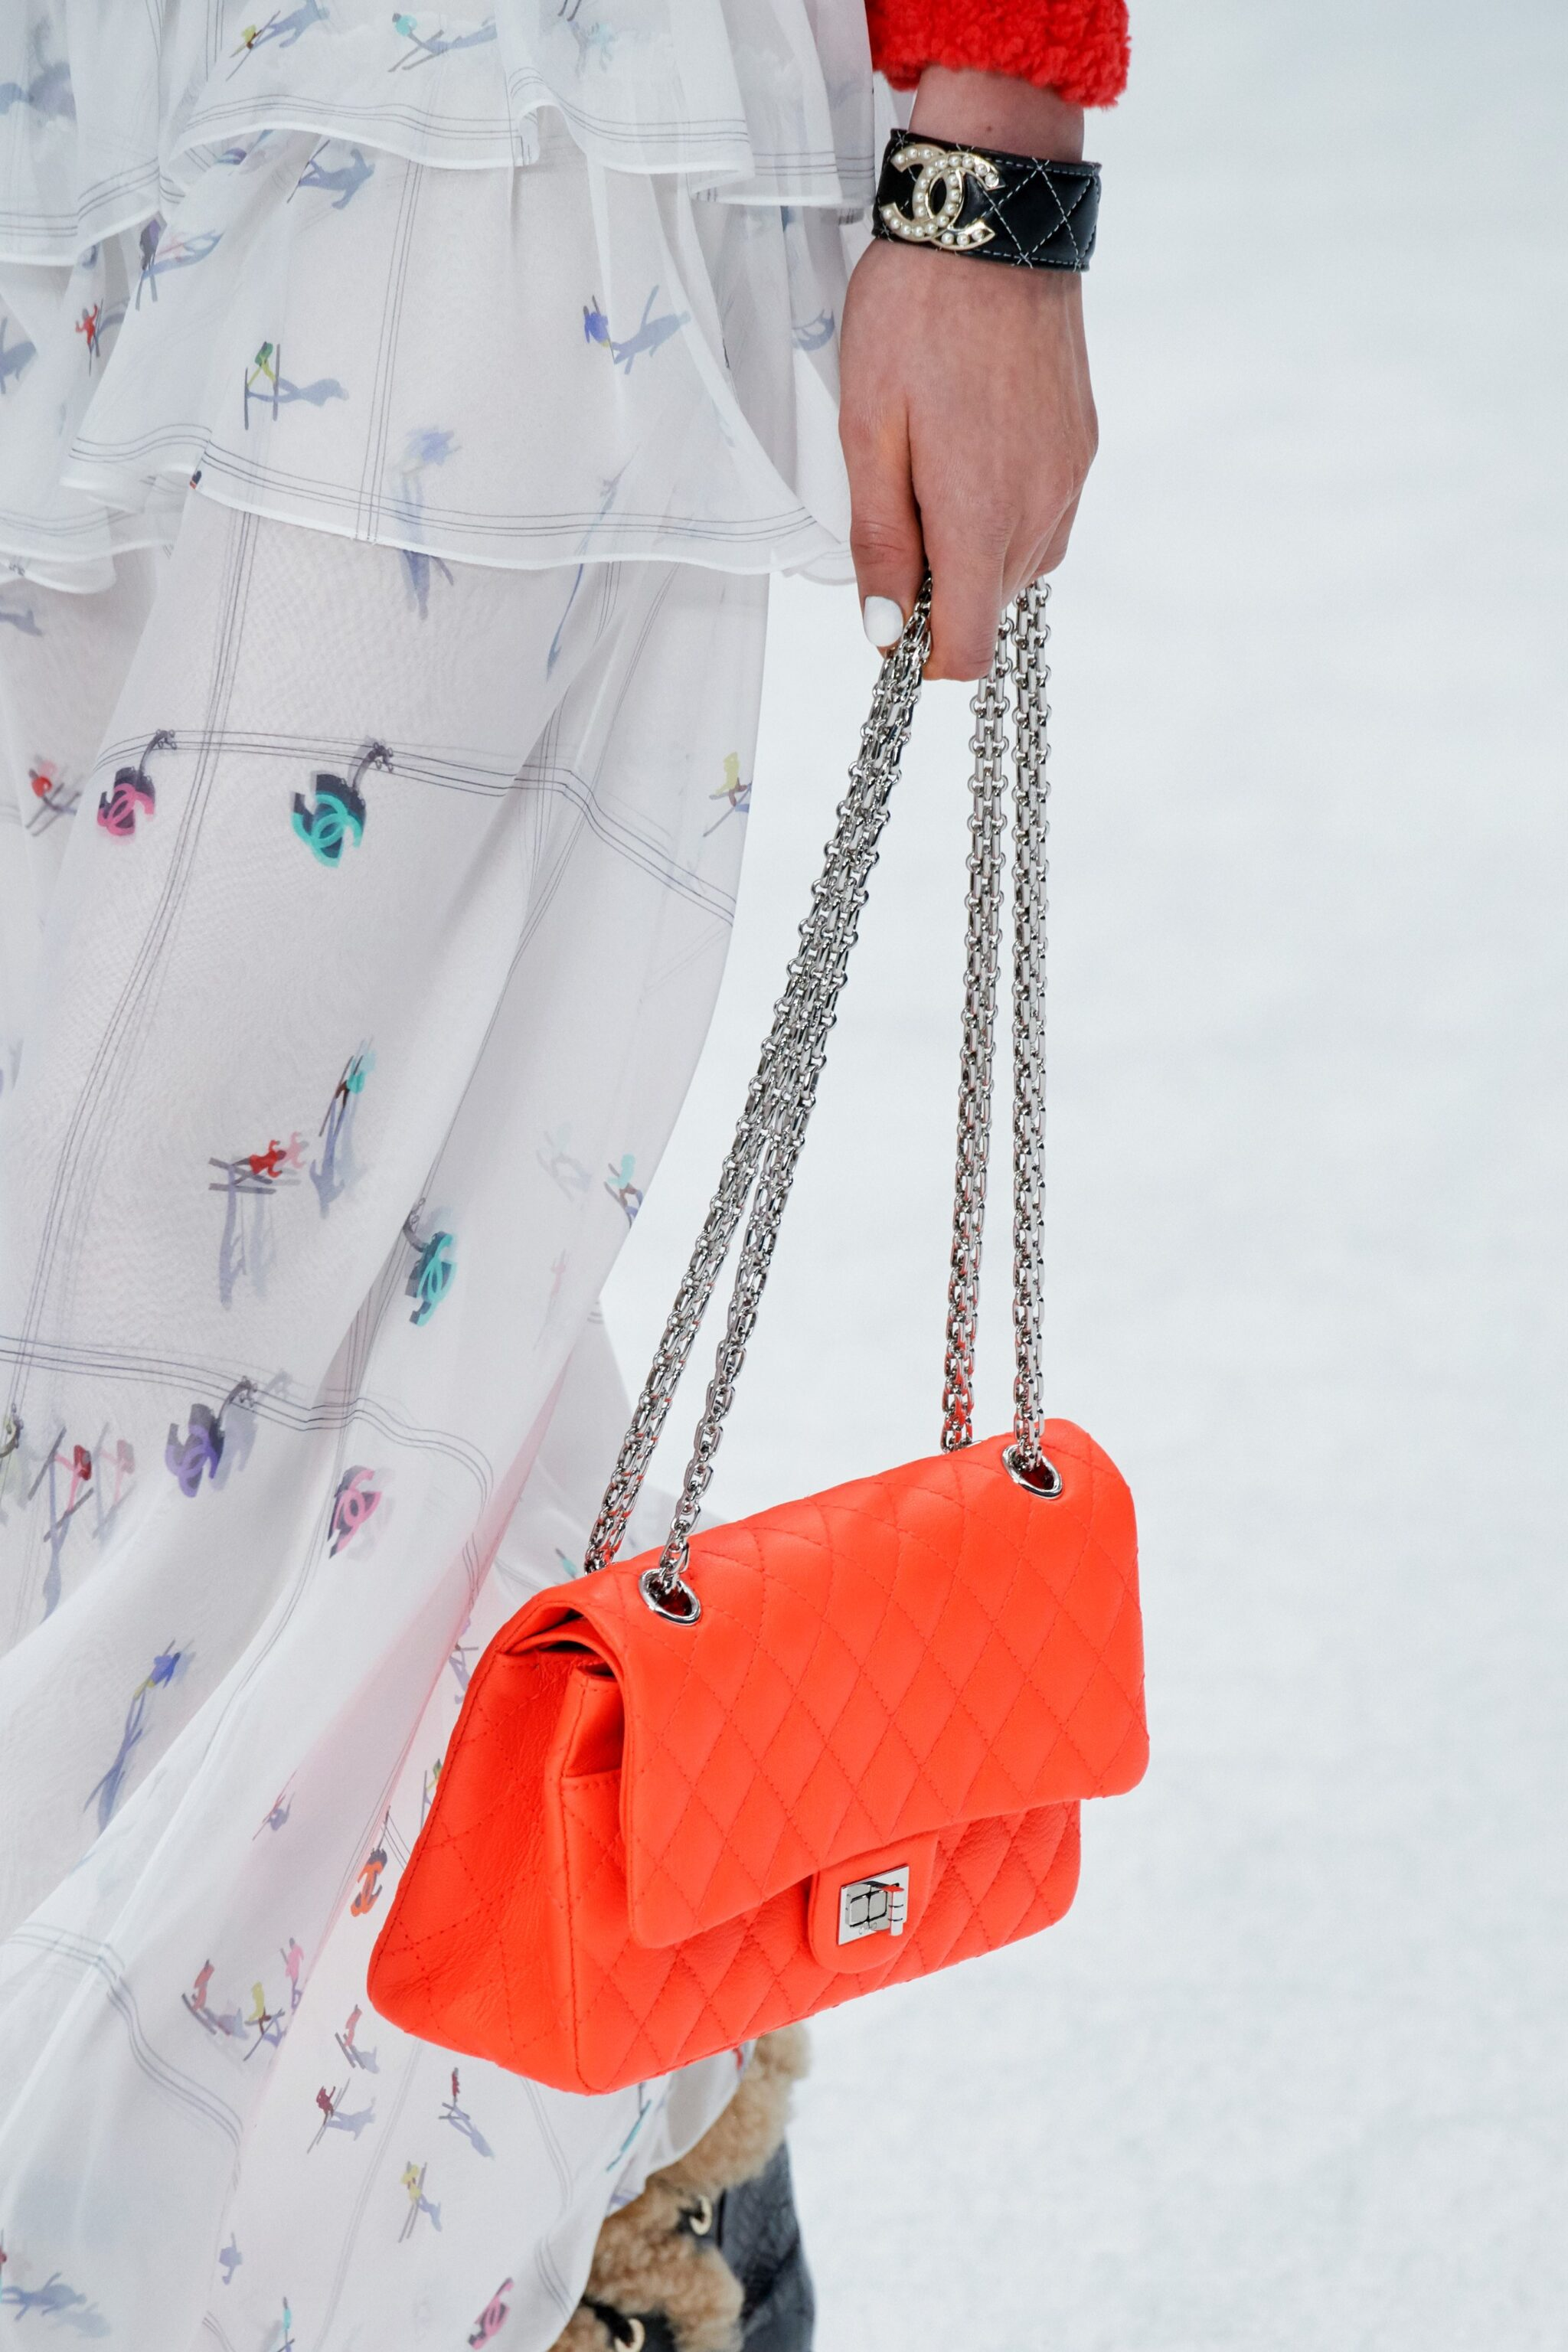 Chanel Fall Winter 2019 Runway Bag Collection Spotted